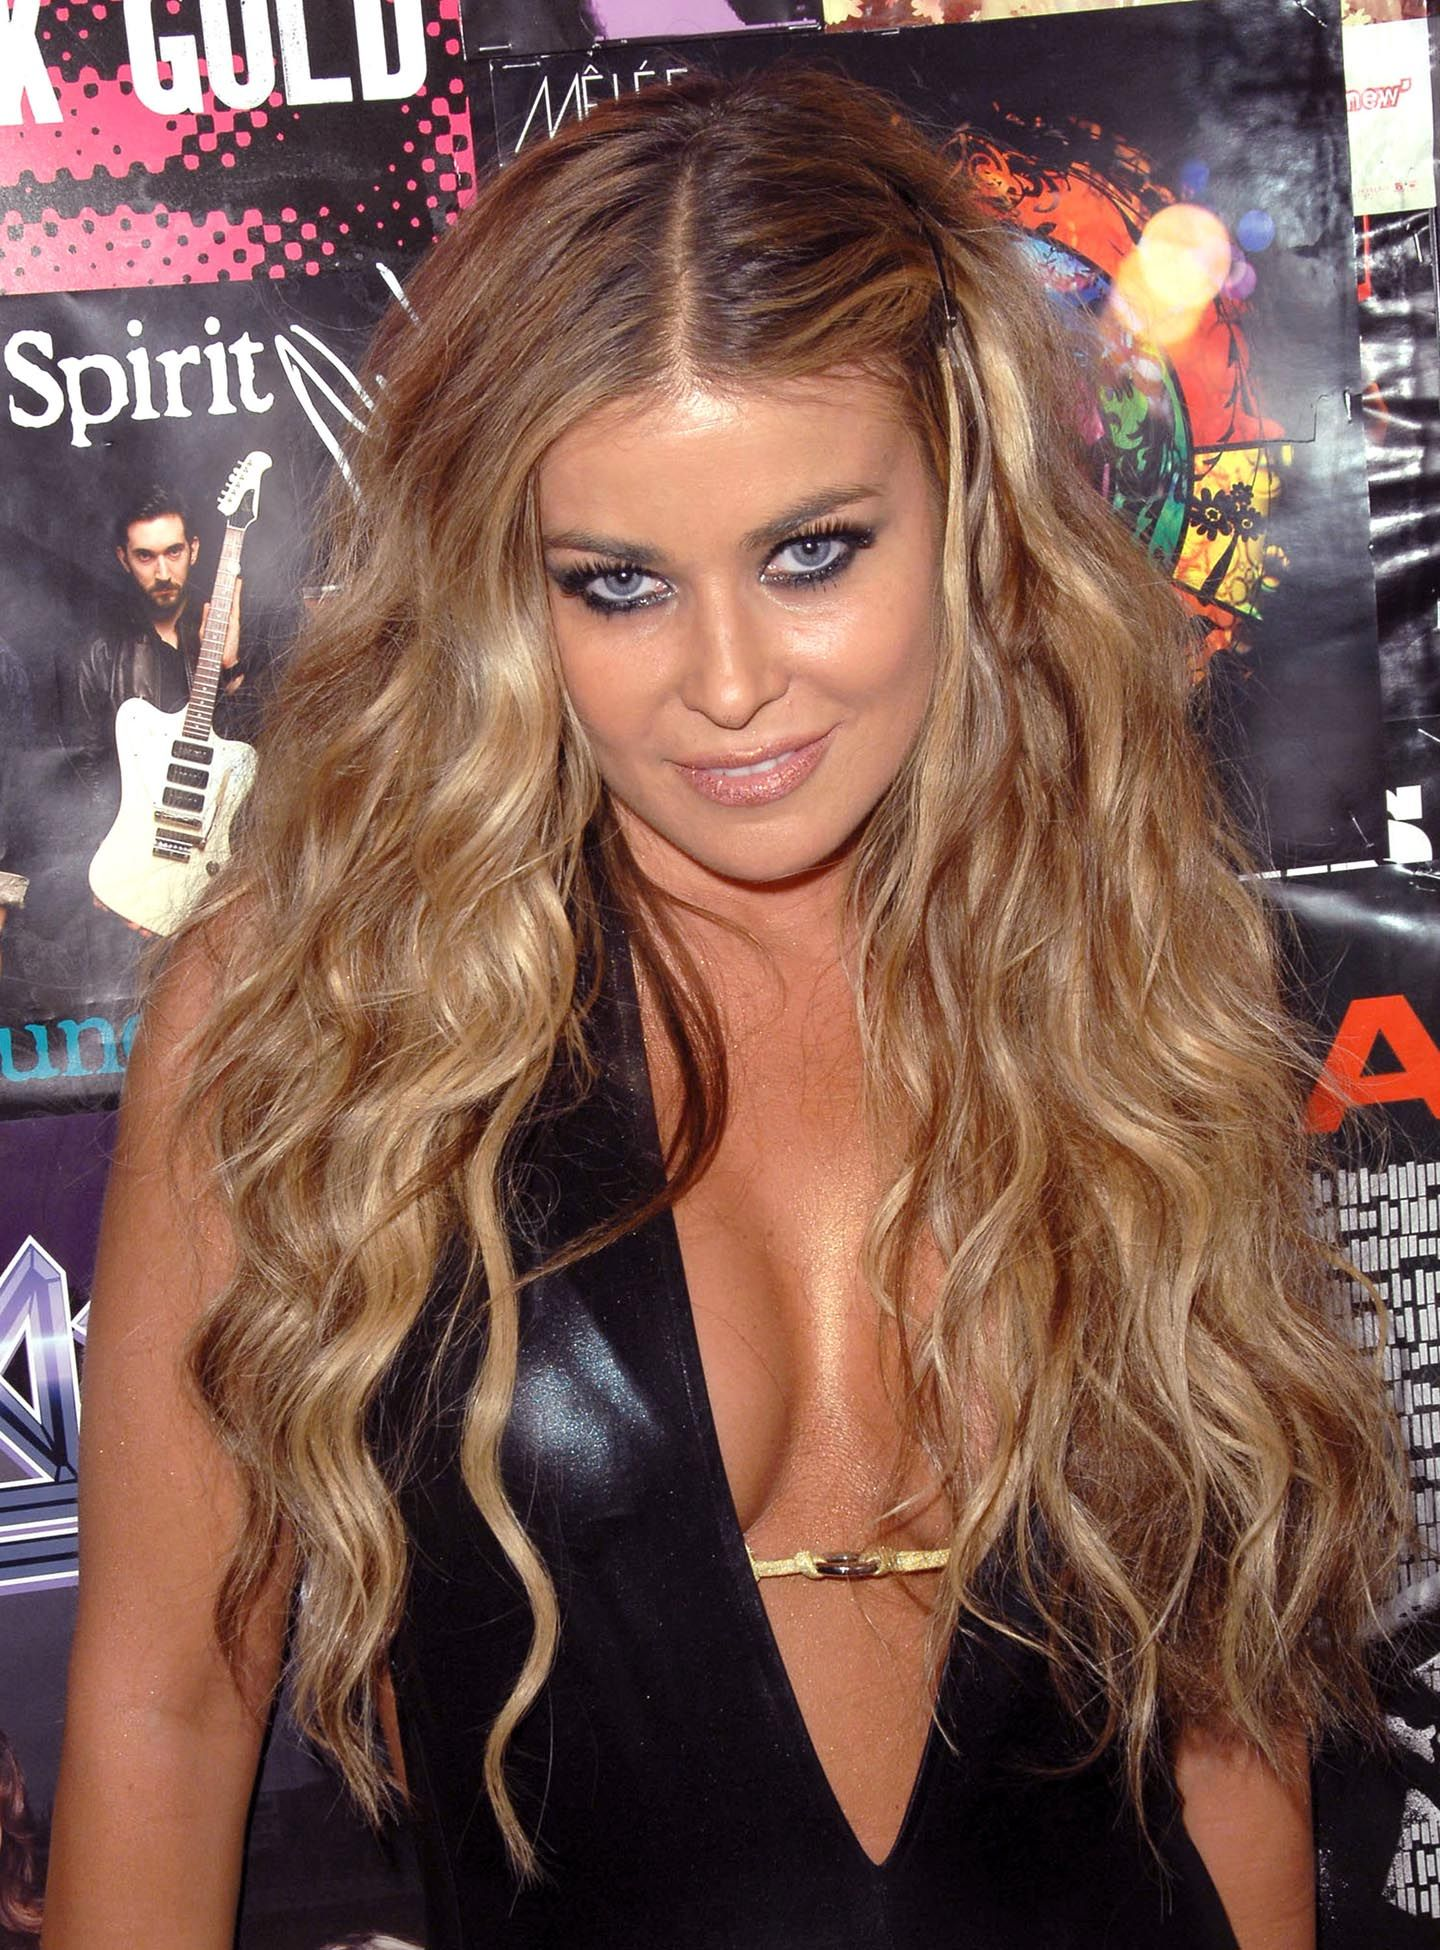 carmen electra youtube videocarmen electra 90s, carmen electra обои, carmen electra instagram, carmen electra wallpapers, carmen electra now, carmen electra wiki, carmen electra insta, carmen electra fit to strip youtube, carmen electra net worth, carmen electra youtube video, carmen electra interview, carmen electra dave navarro, carmen electra aerobic in bedroom, carmen electra biographie, carmen electra fitness, carmen electra make up, carmen electra with love from carmen, carmen electra show, carmen electra book of fire, carmen electra inst